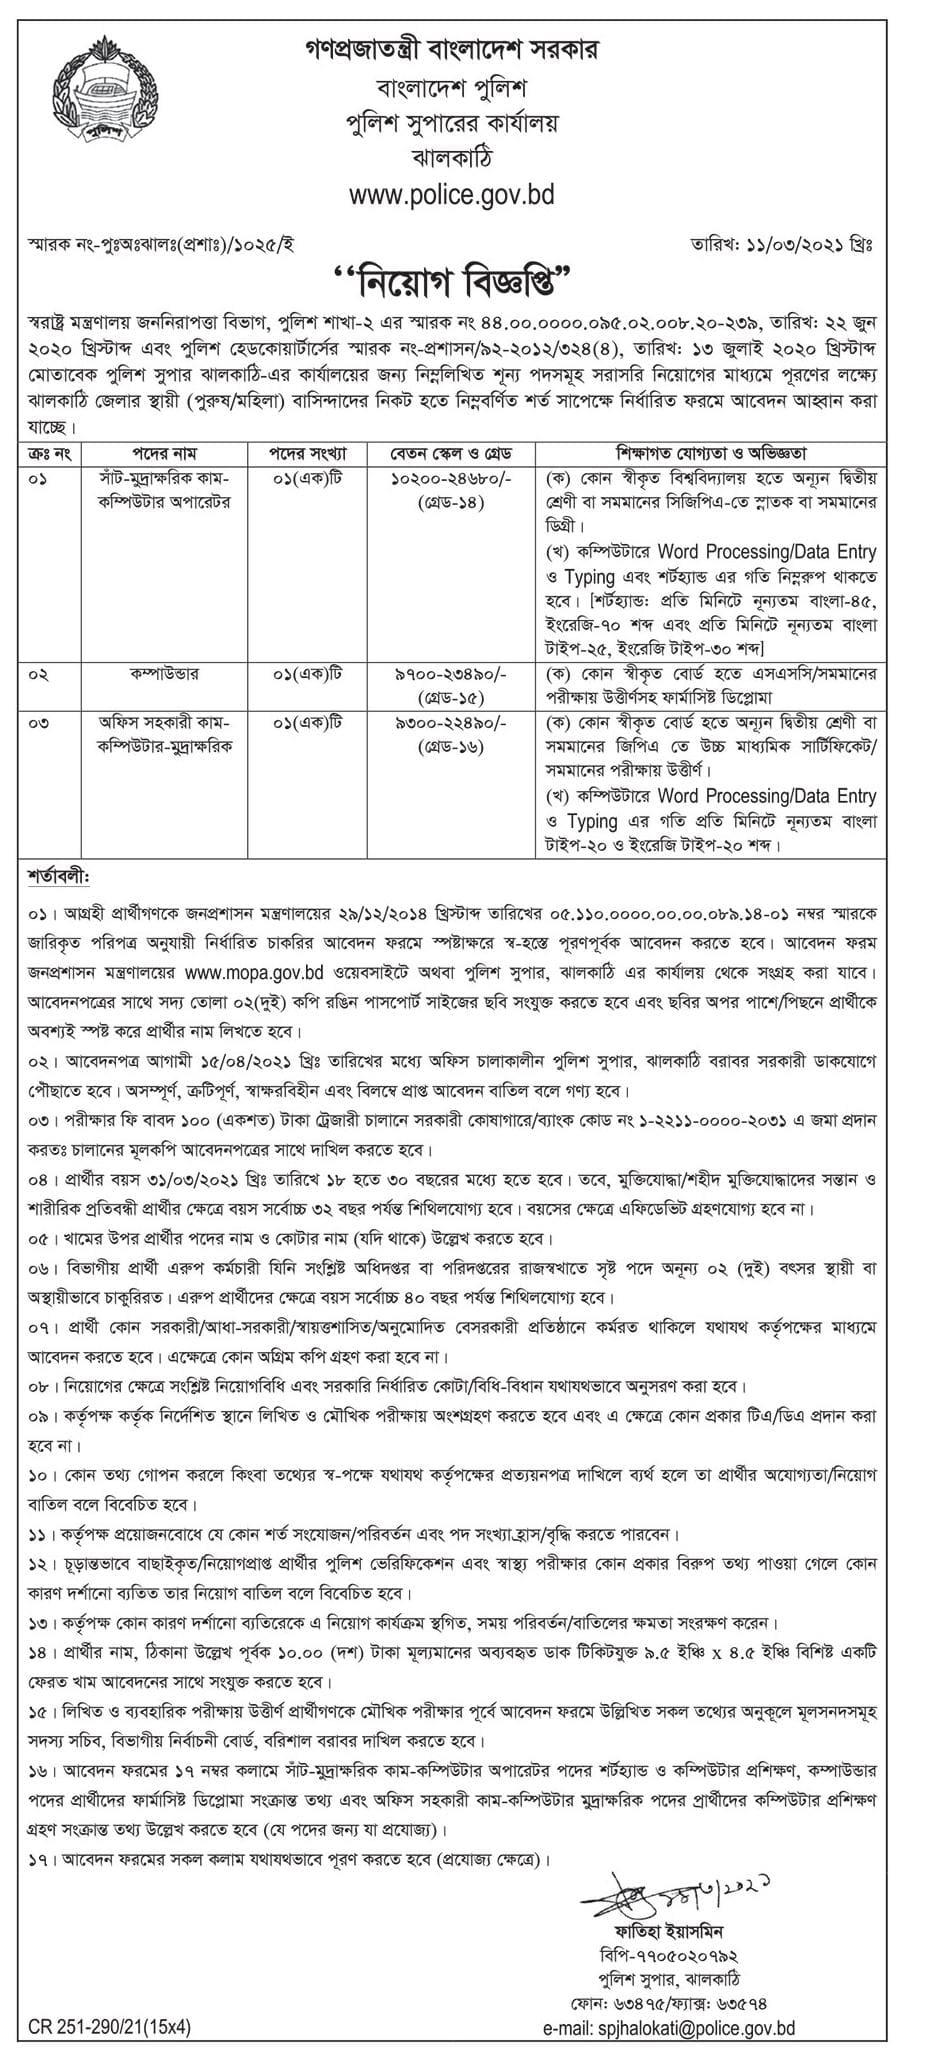 Jhalokati Police Super office Job Circular 2021